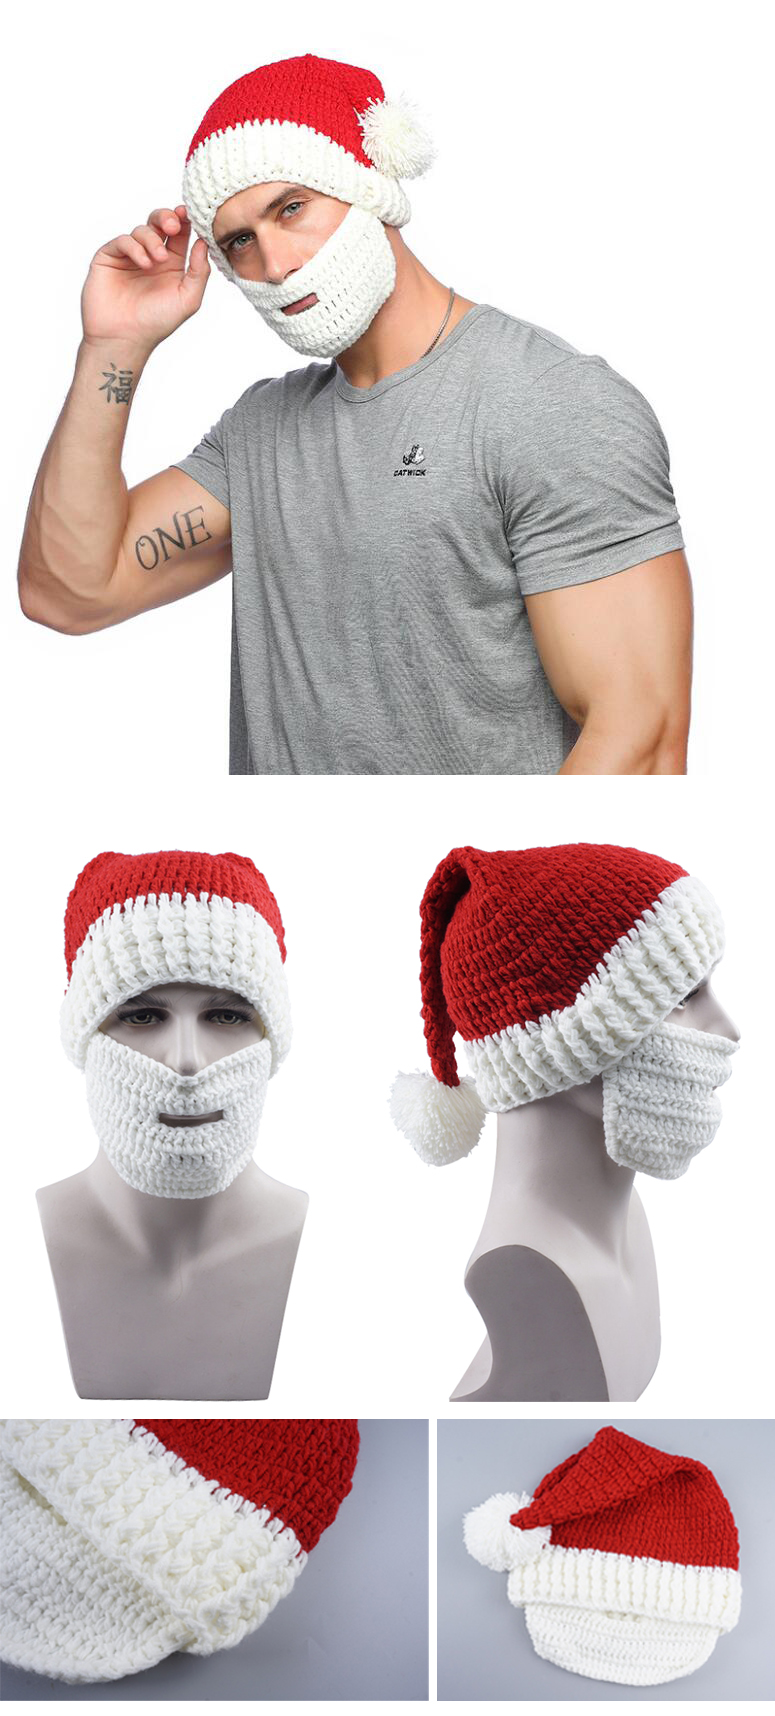 Winter Crocheted Men's Santa Claus Father Xmas Hats With Colourful Beard Handmade Christmas Present Party Knitted skull Beanies